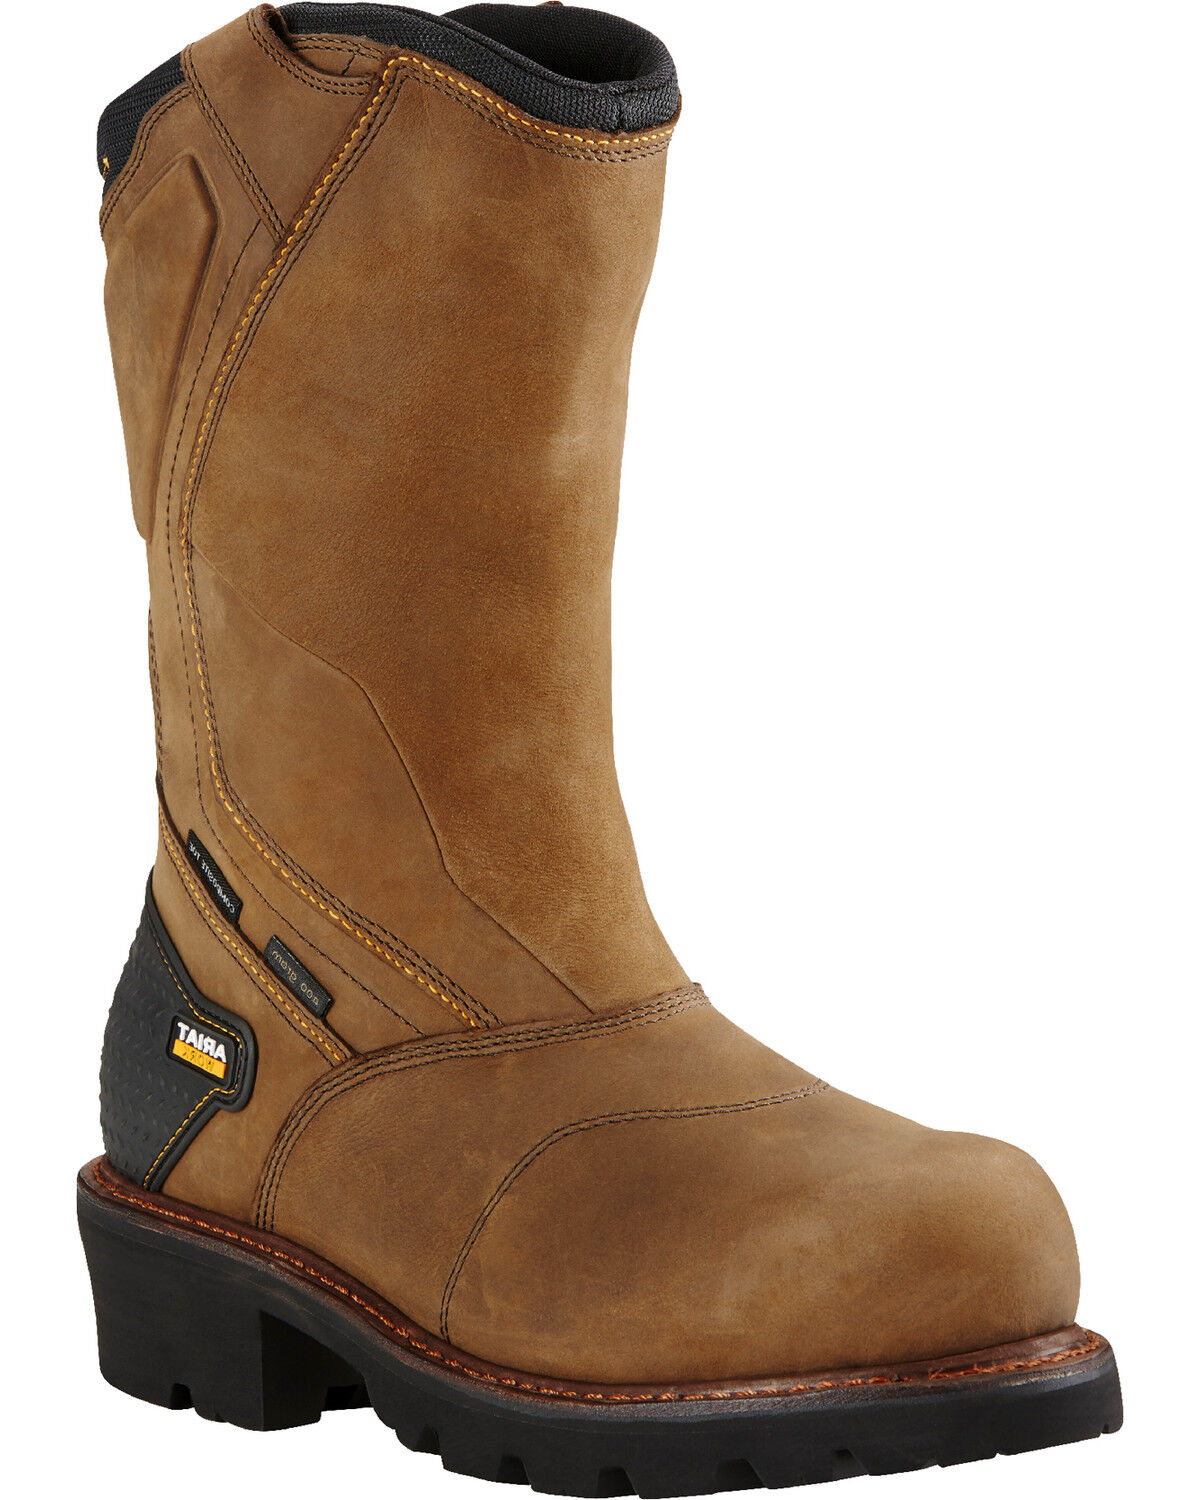 Men's Insulated Work Boots - Boot Barn